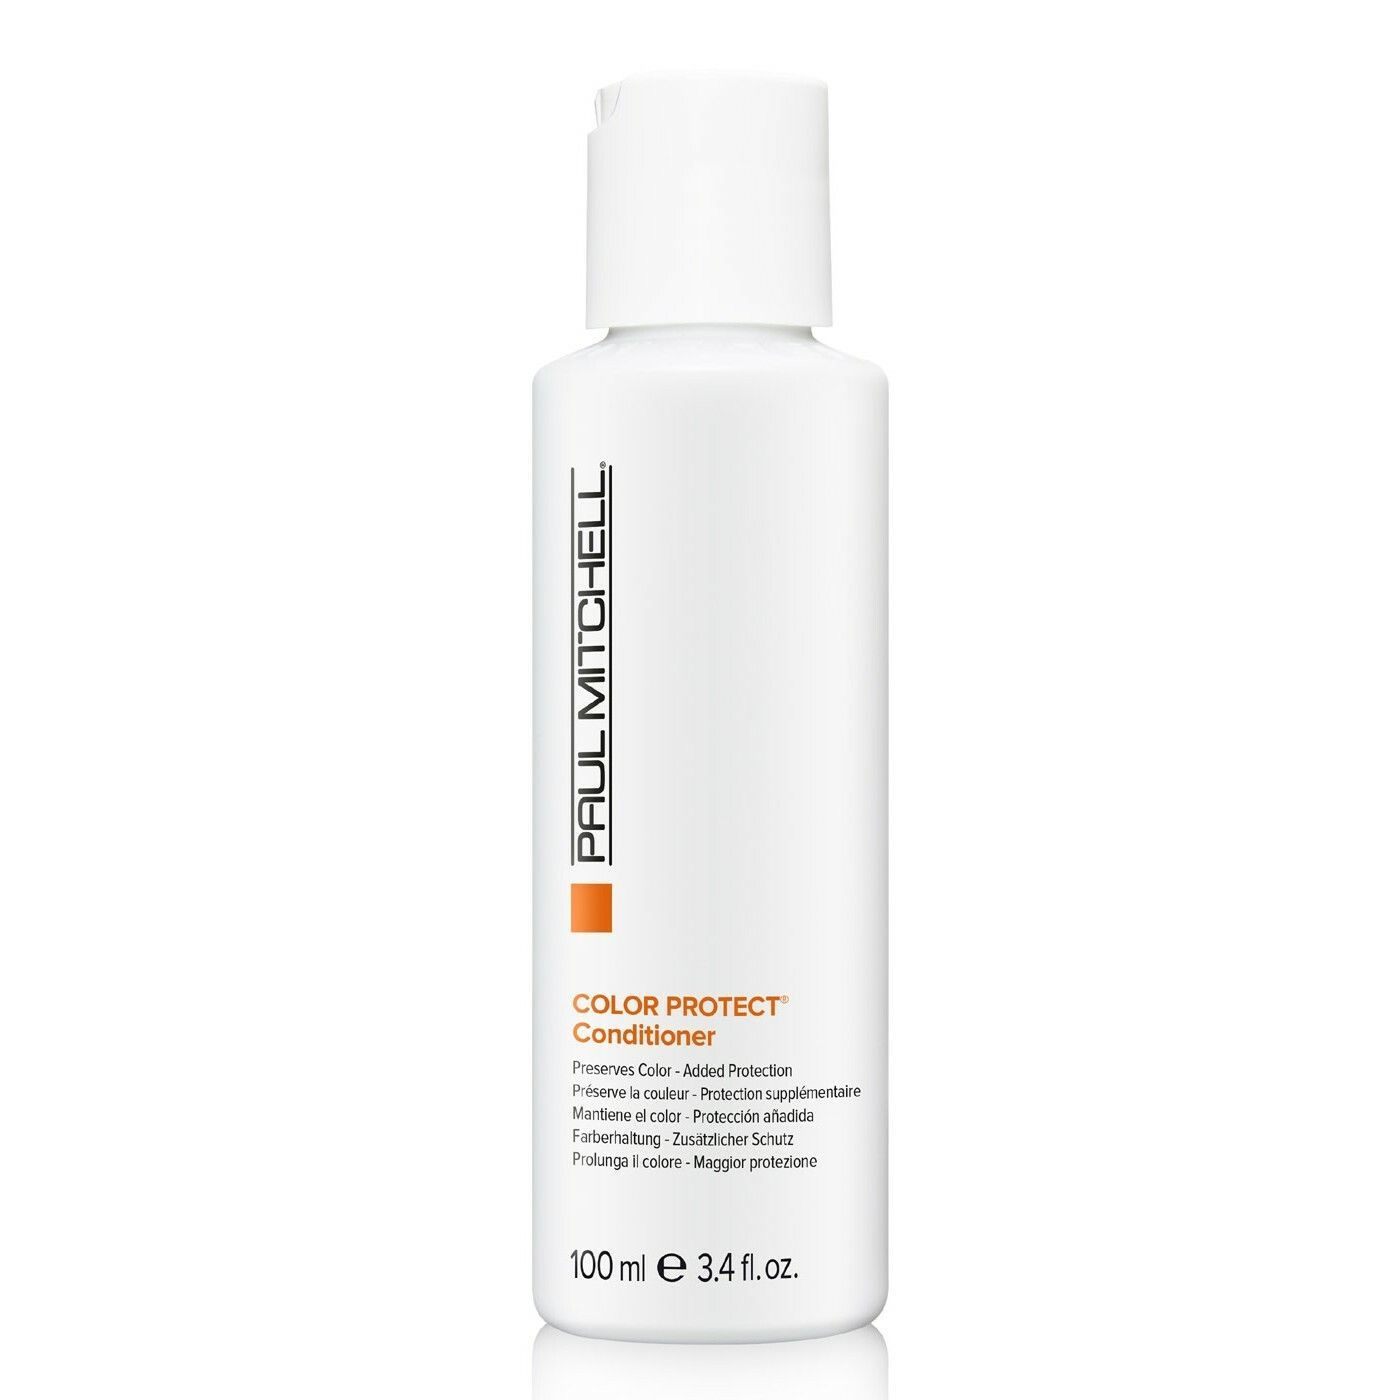 Paul Mitchell Color Protect Daily Conditioner - 100ml